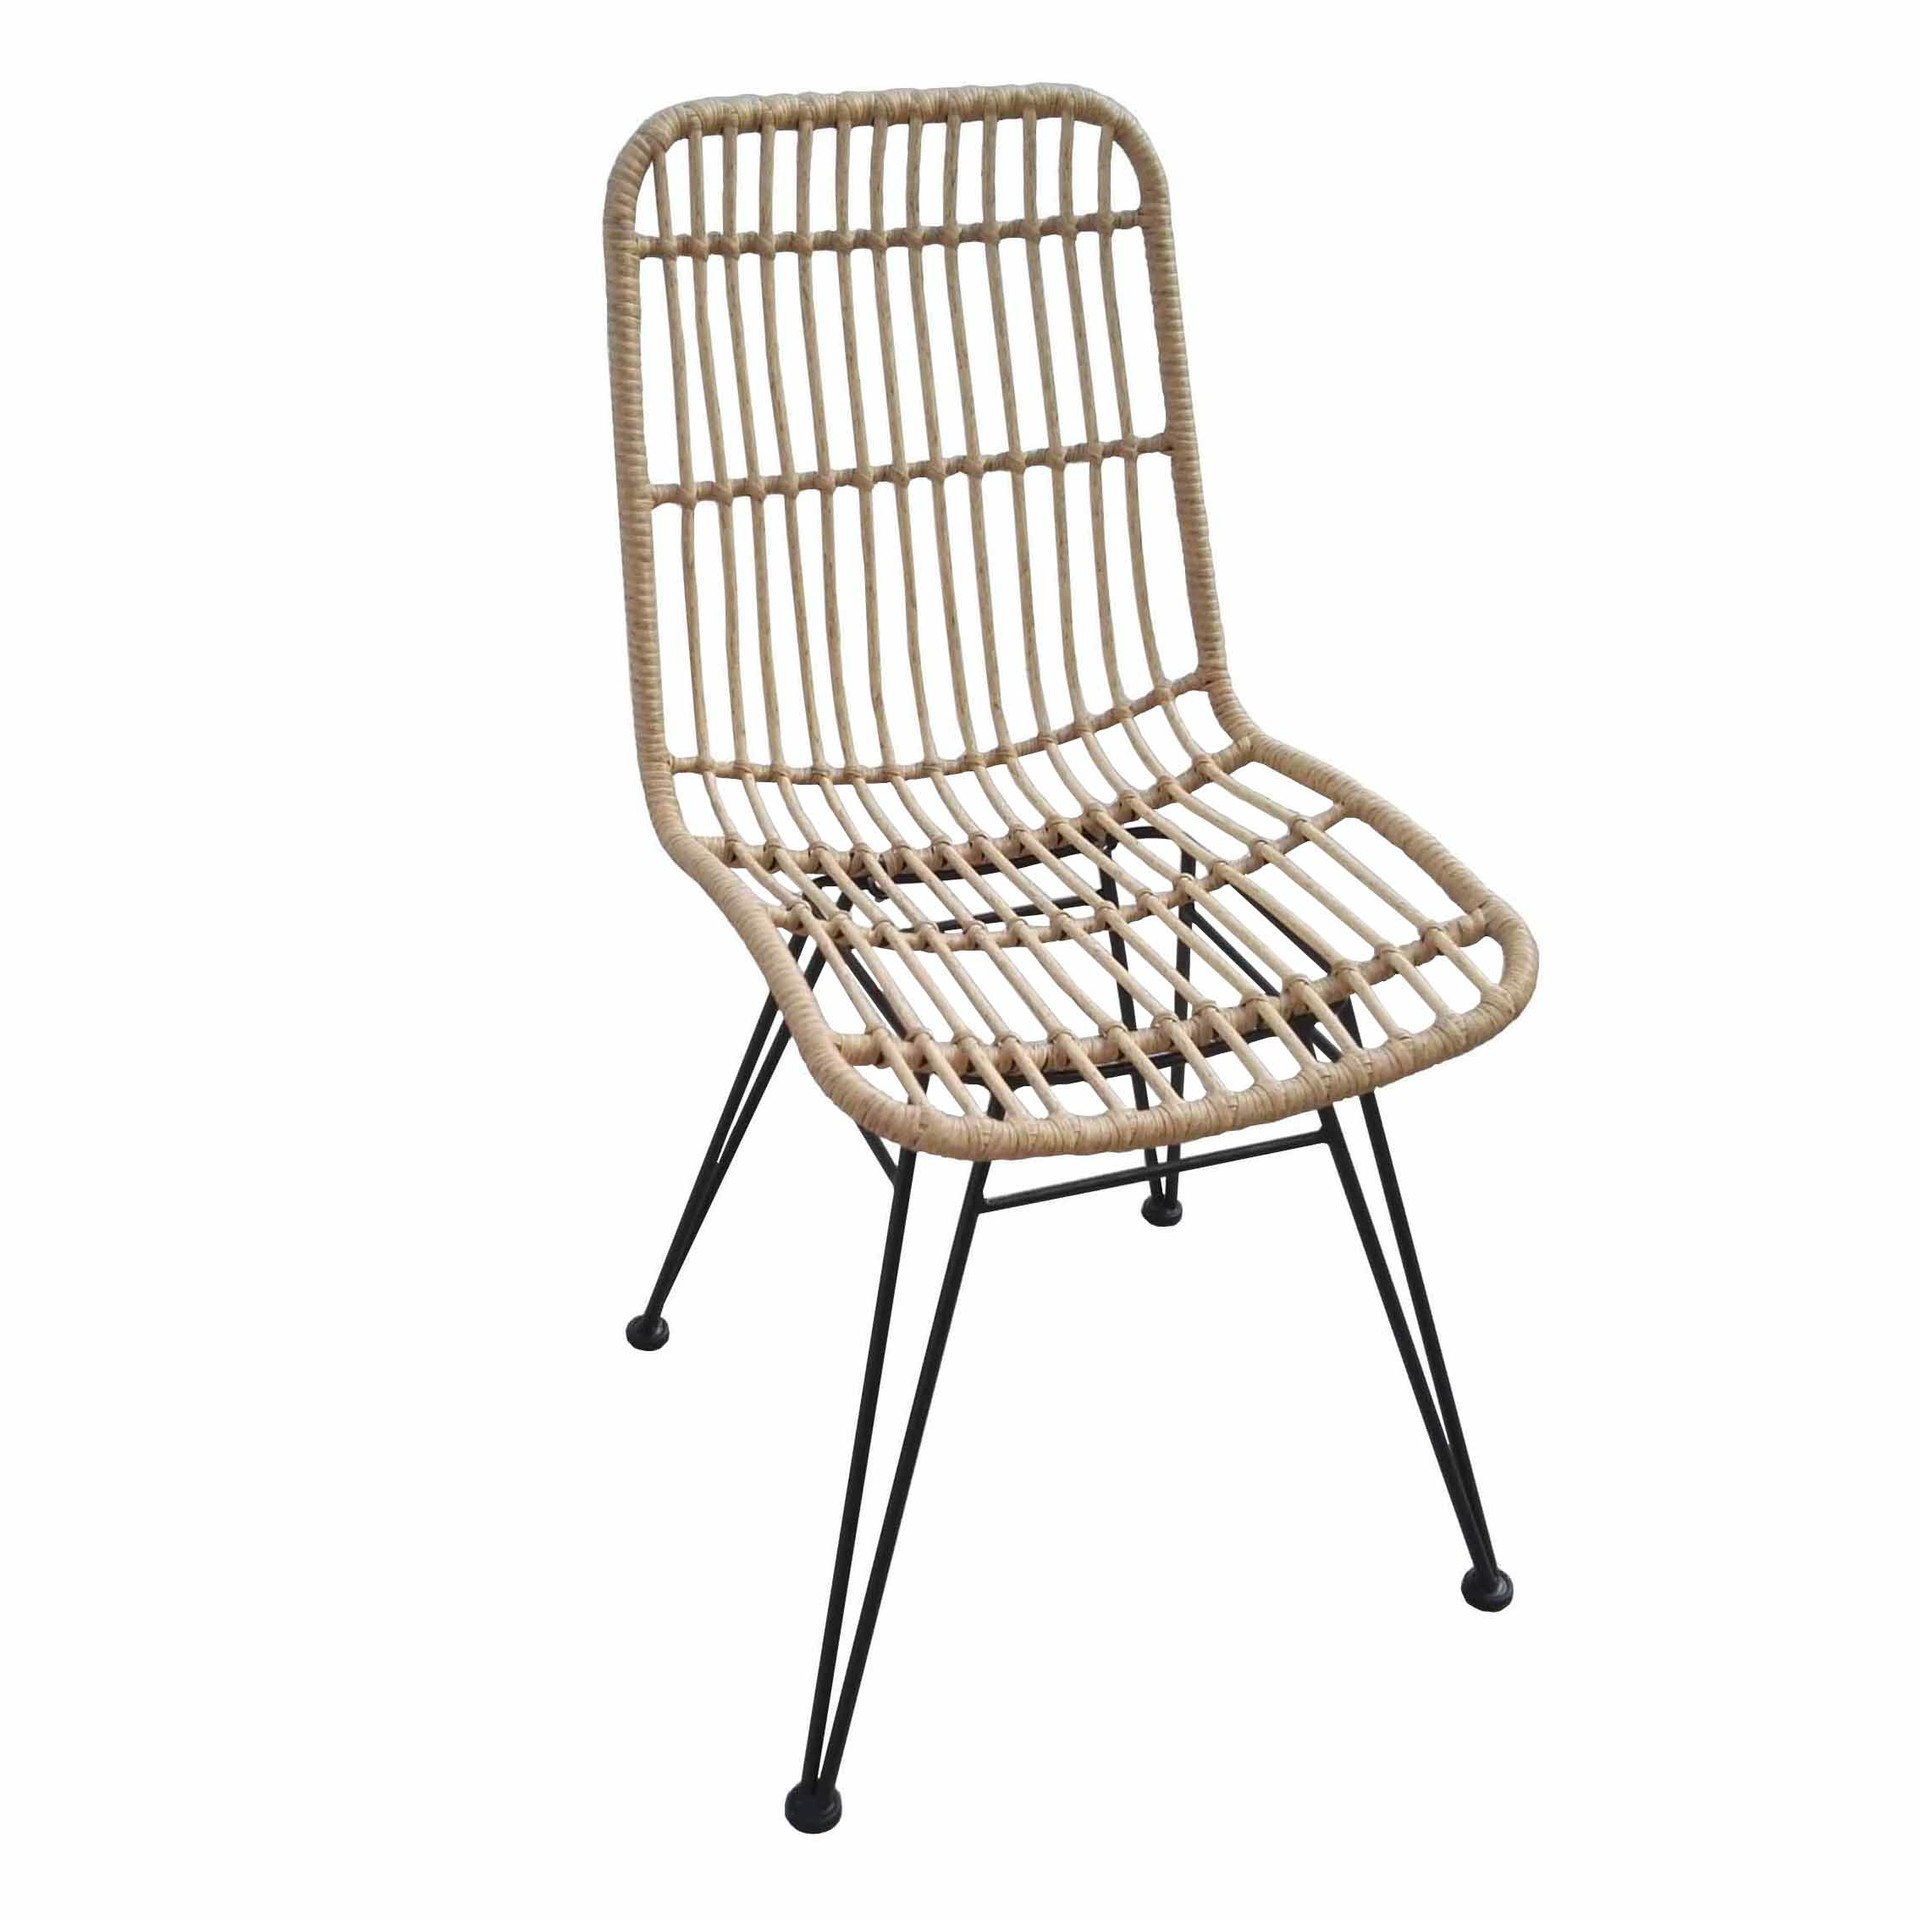 TW8708S metal Rattan chair natural dinning chair European leisure style